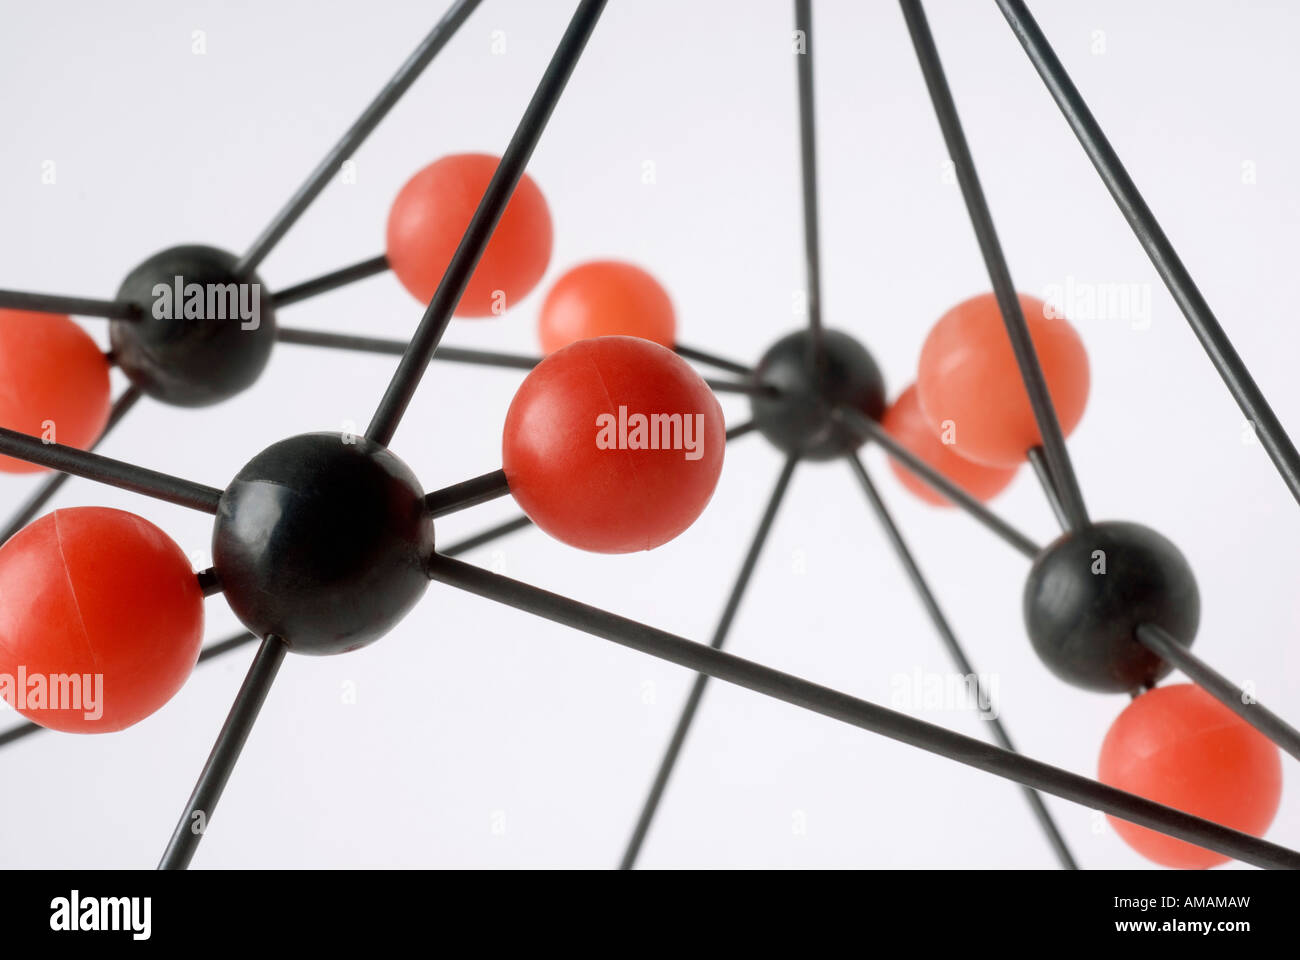 Close-up of molecular model on a white background - Stock Image